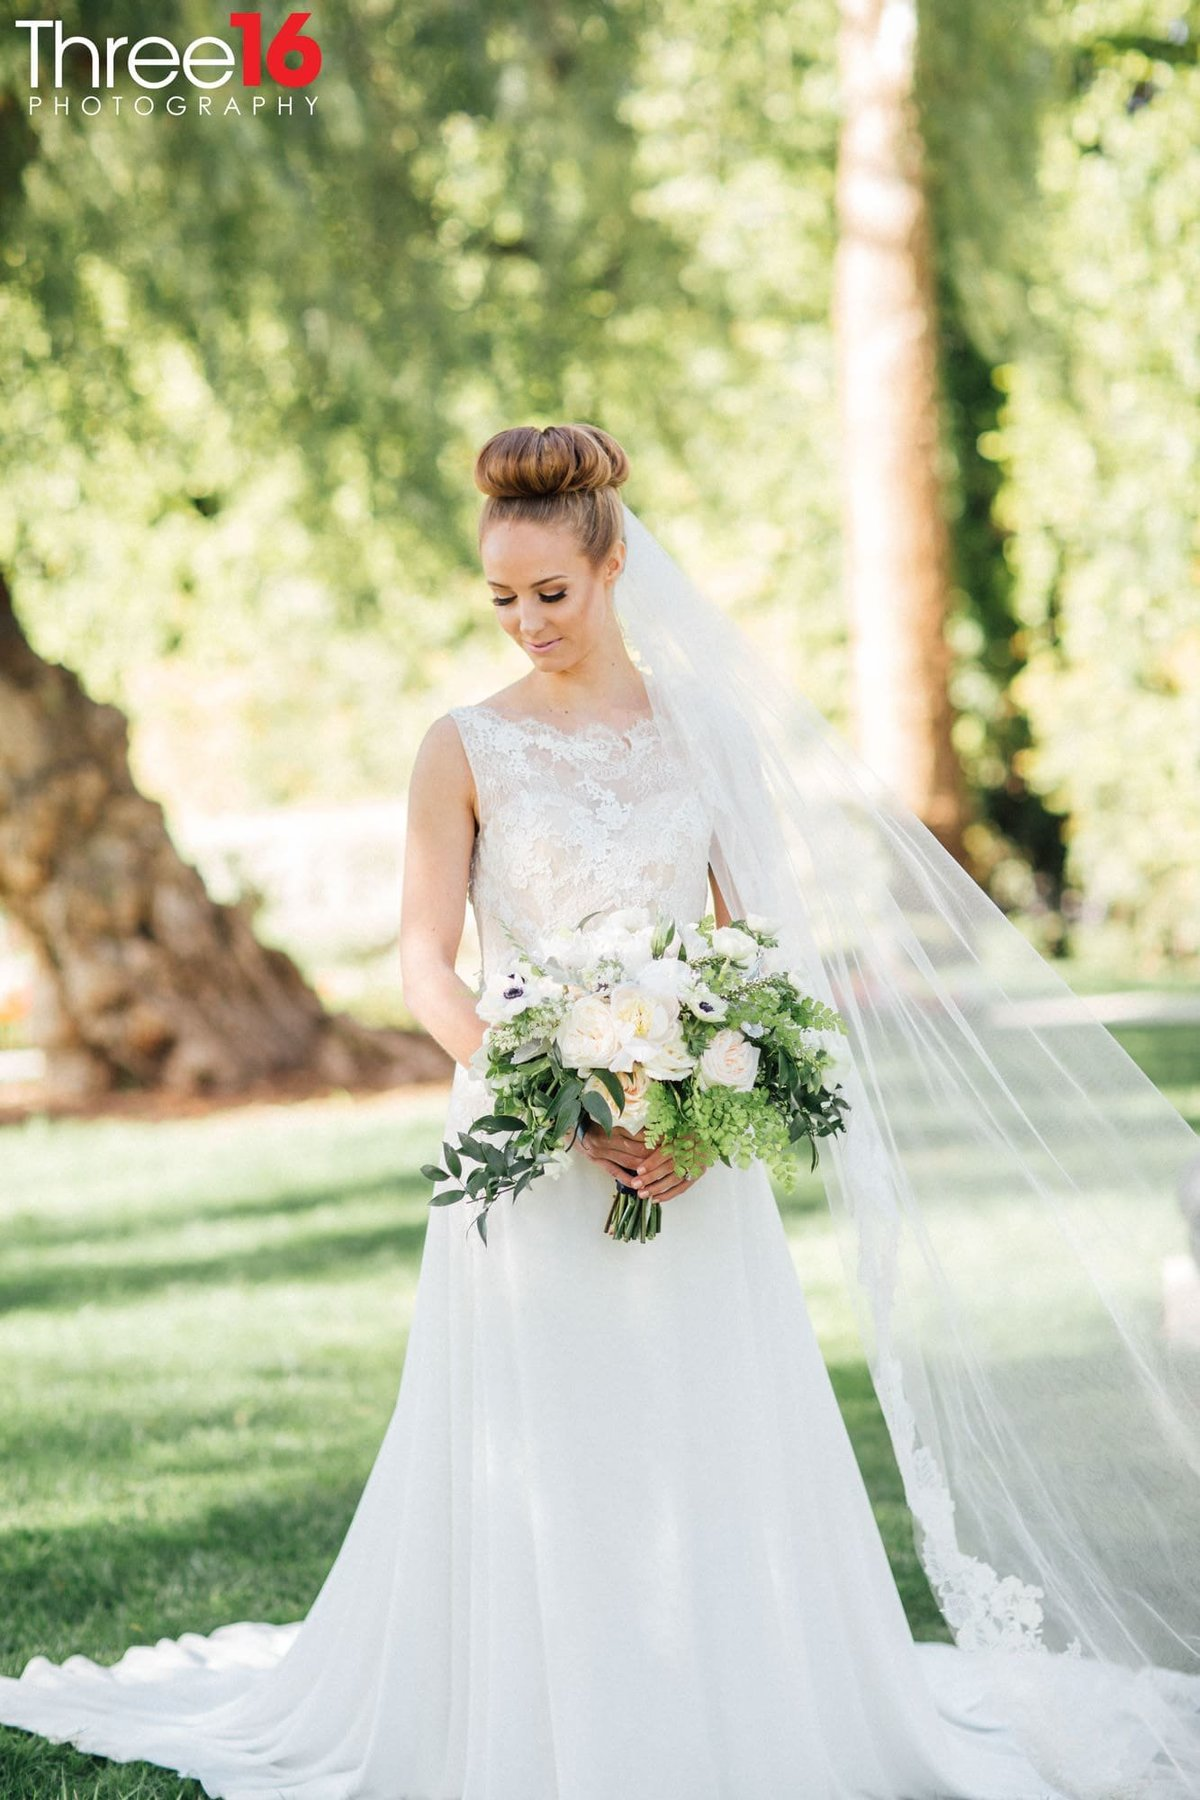 Beautiful Brides poses for the wedding photographer